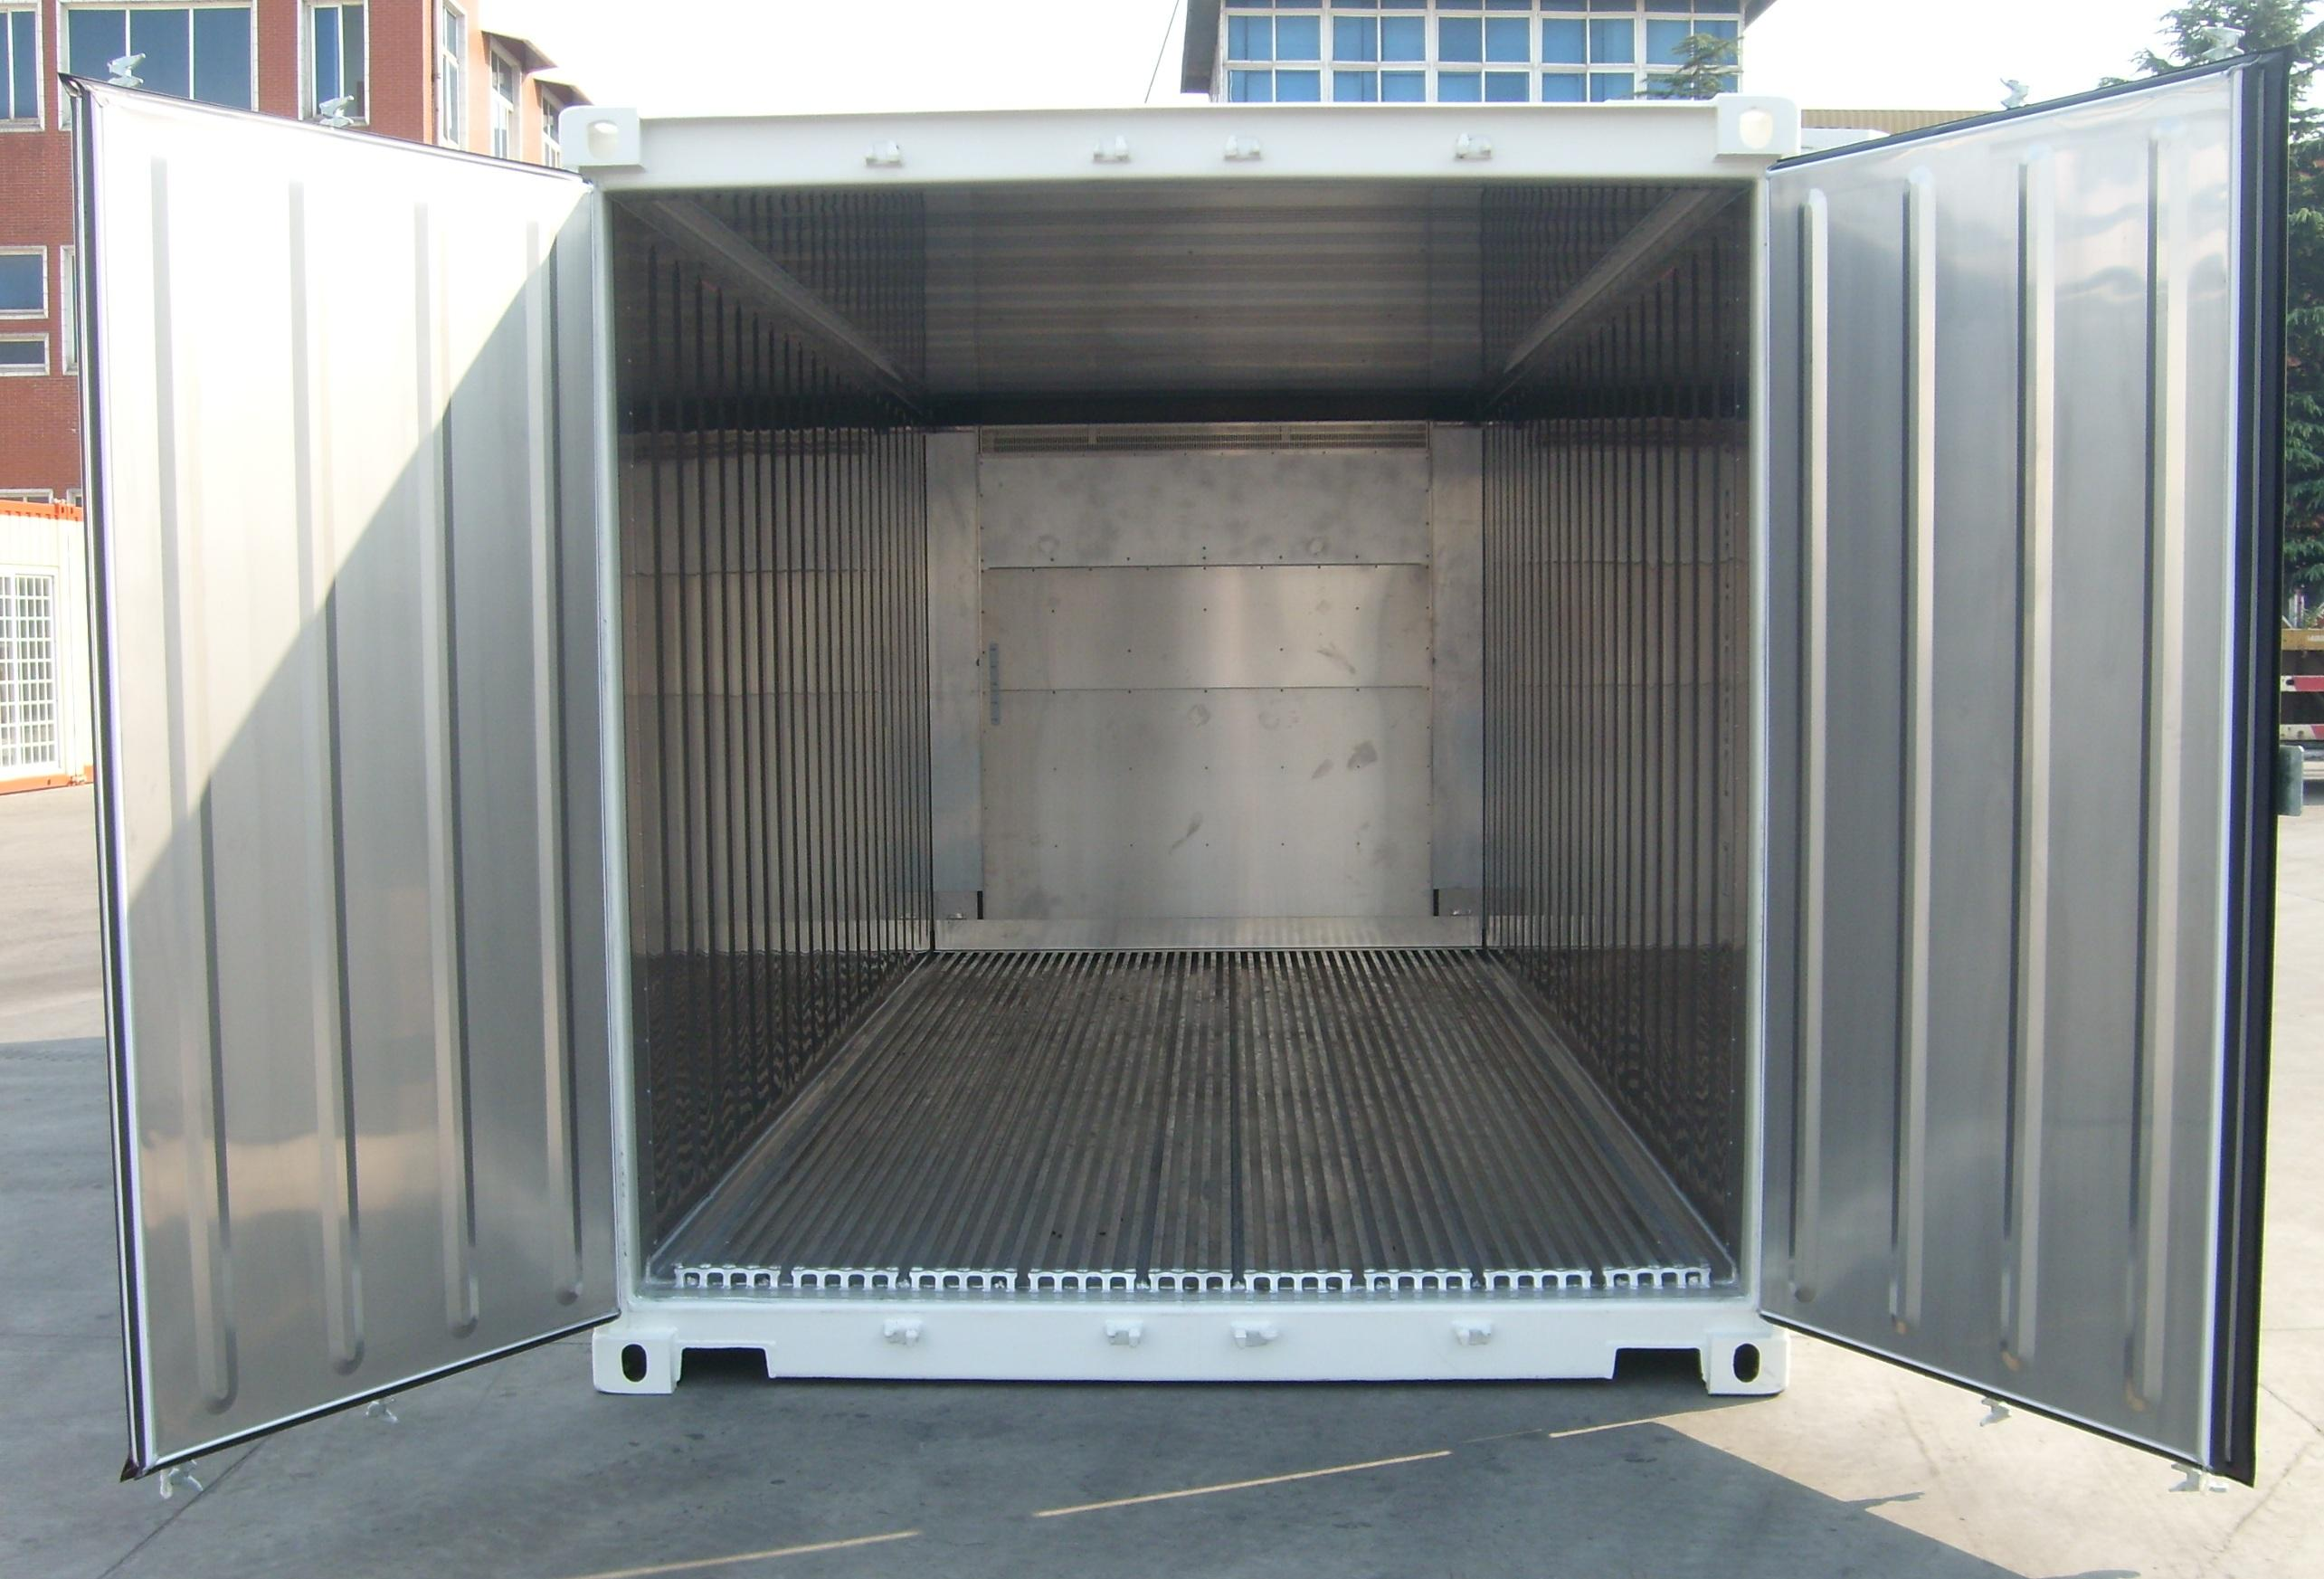 Reefer Containers For Sale In Doha Qatar Qatar Living